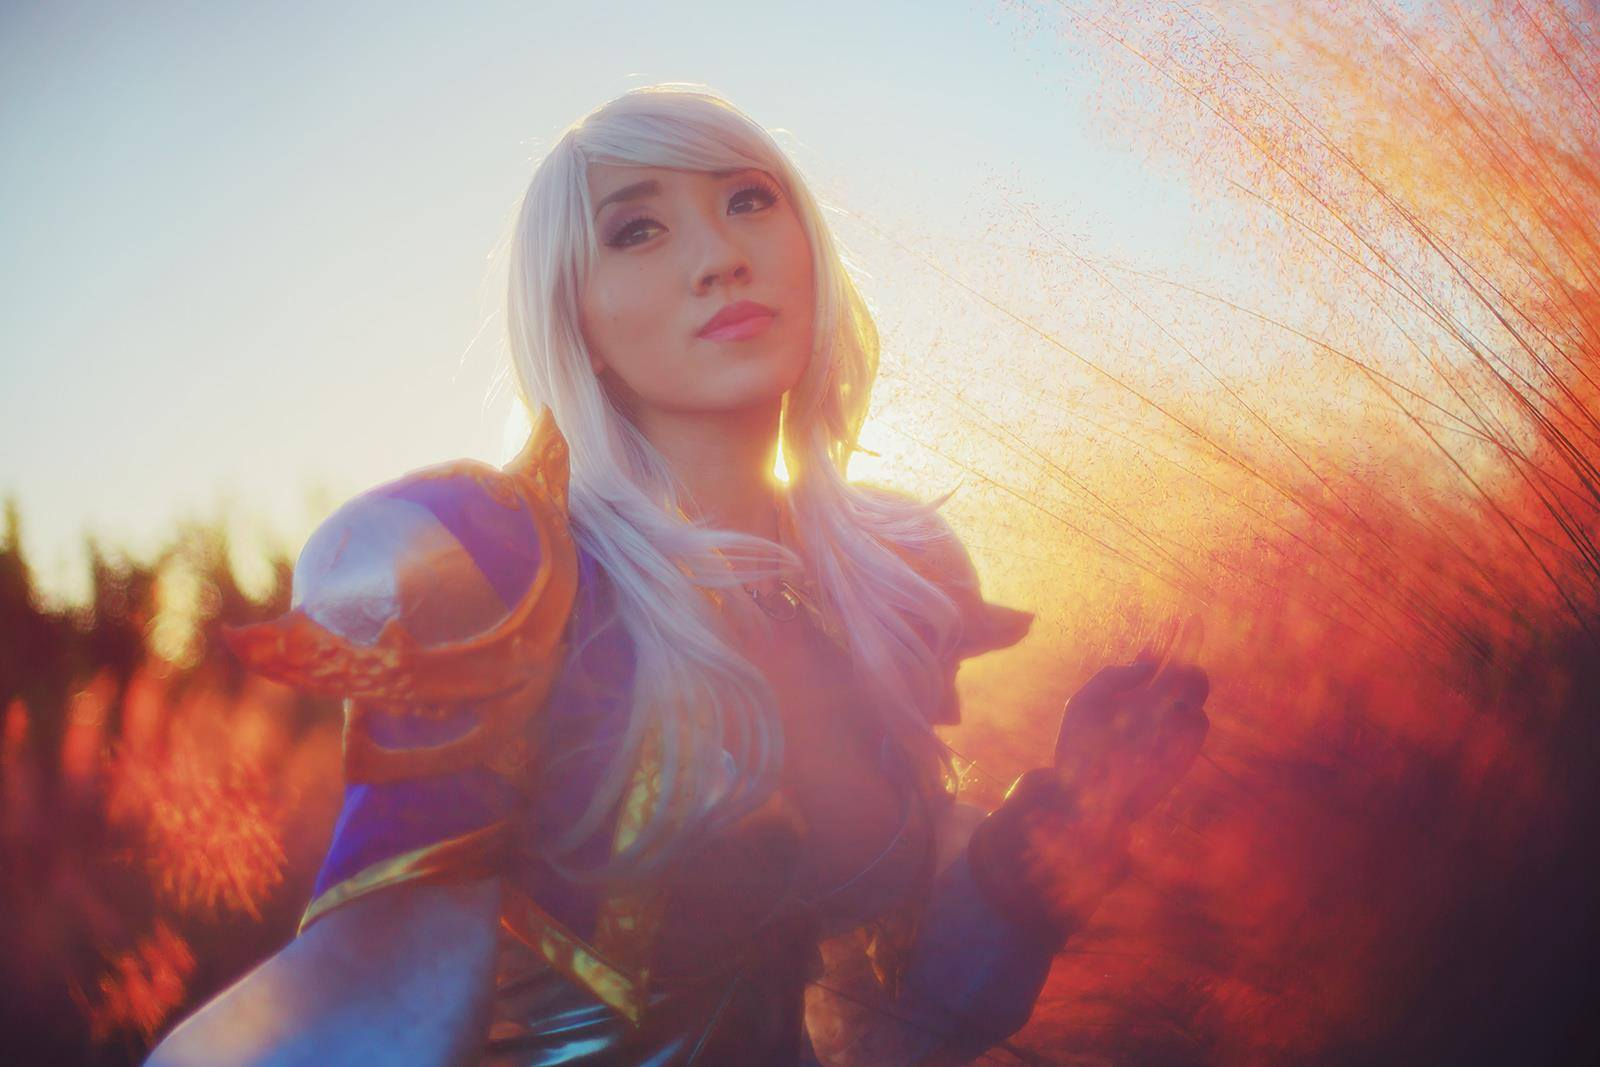 Cosplayer Stella Chuu brings us a striking representation of World of Warcraft's premier mage and leader of the Kirin Tor.